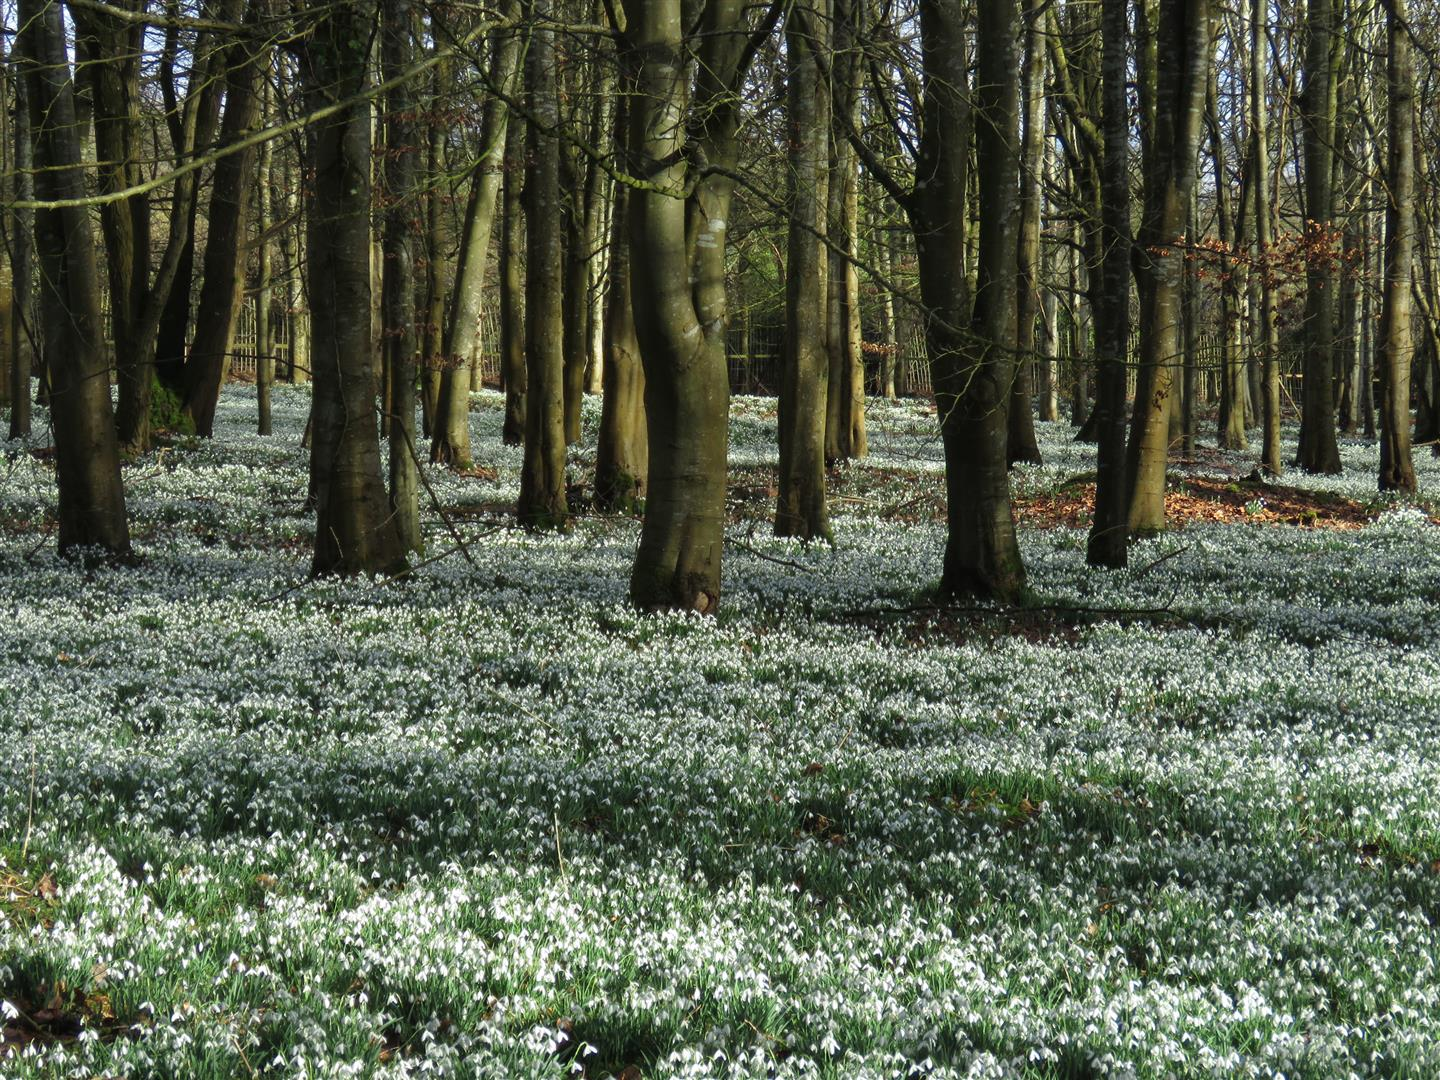 Snowdrops at Welford Park, Berkshire